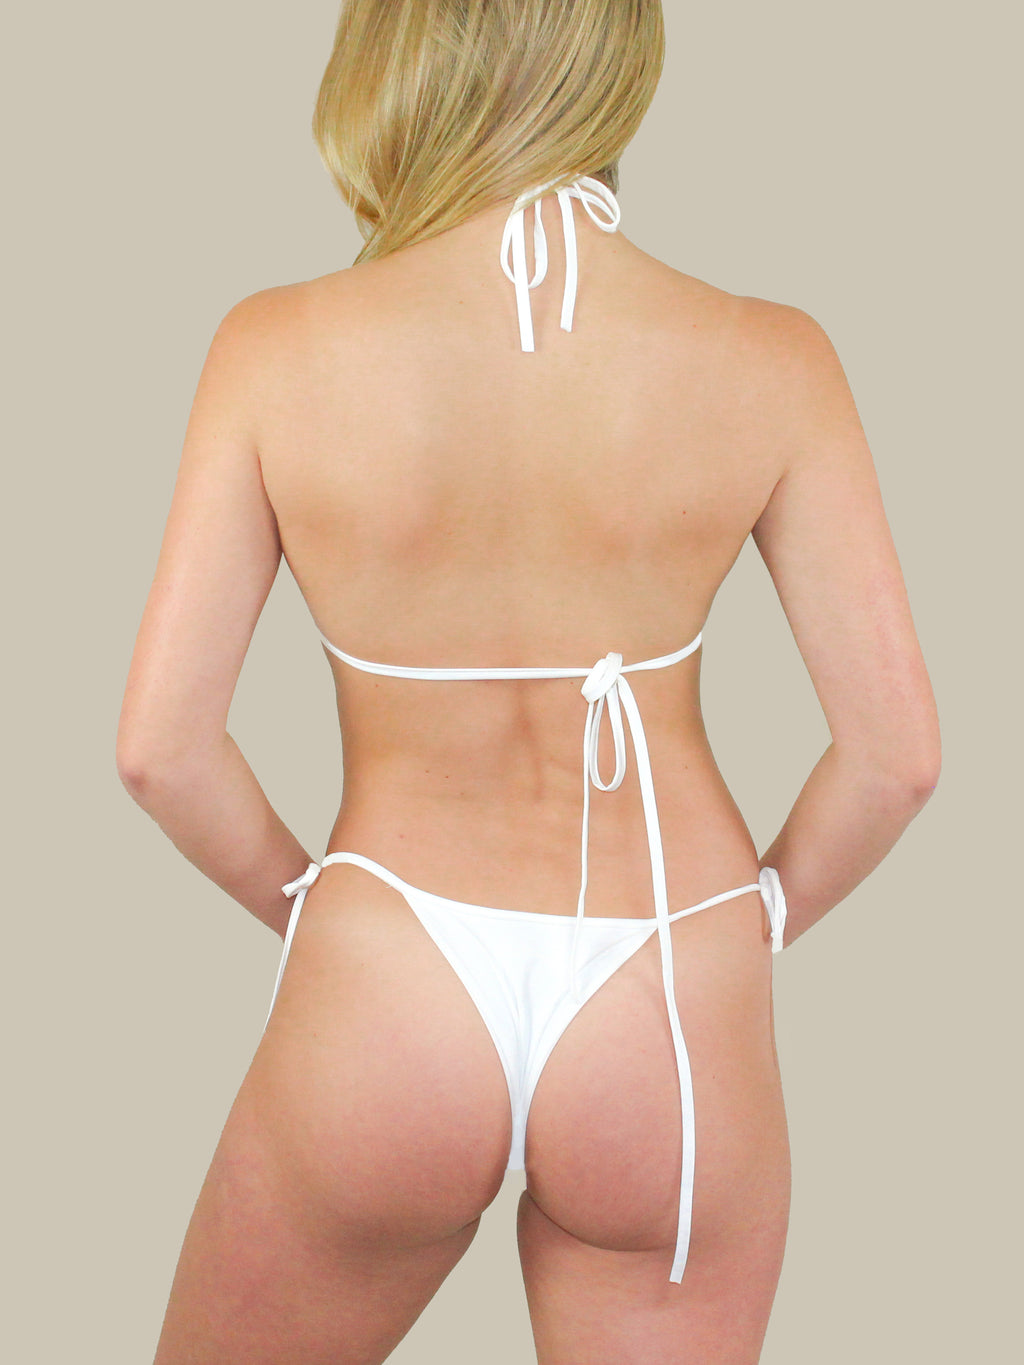 437 Swimwear's The Sander's Bottoms feature a white seamless fabric with side ties. These bottoms have minimal coverage and are perfect for tanning outdoors.